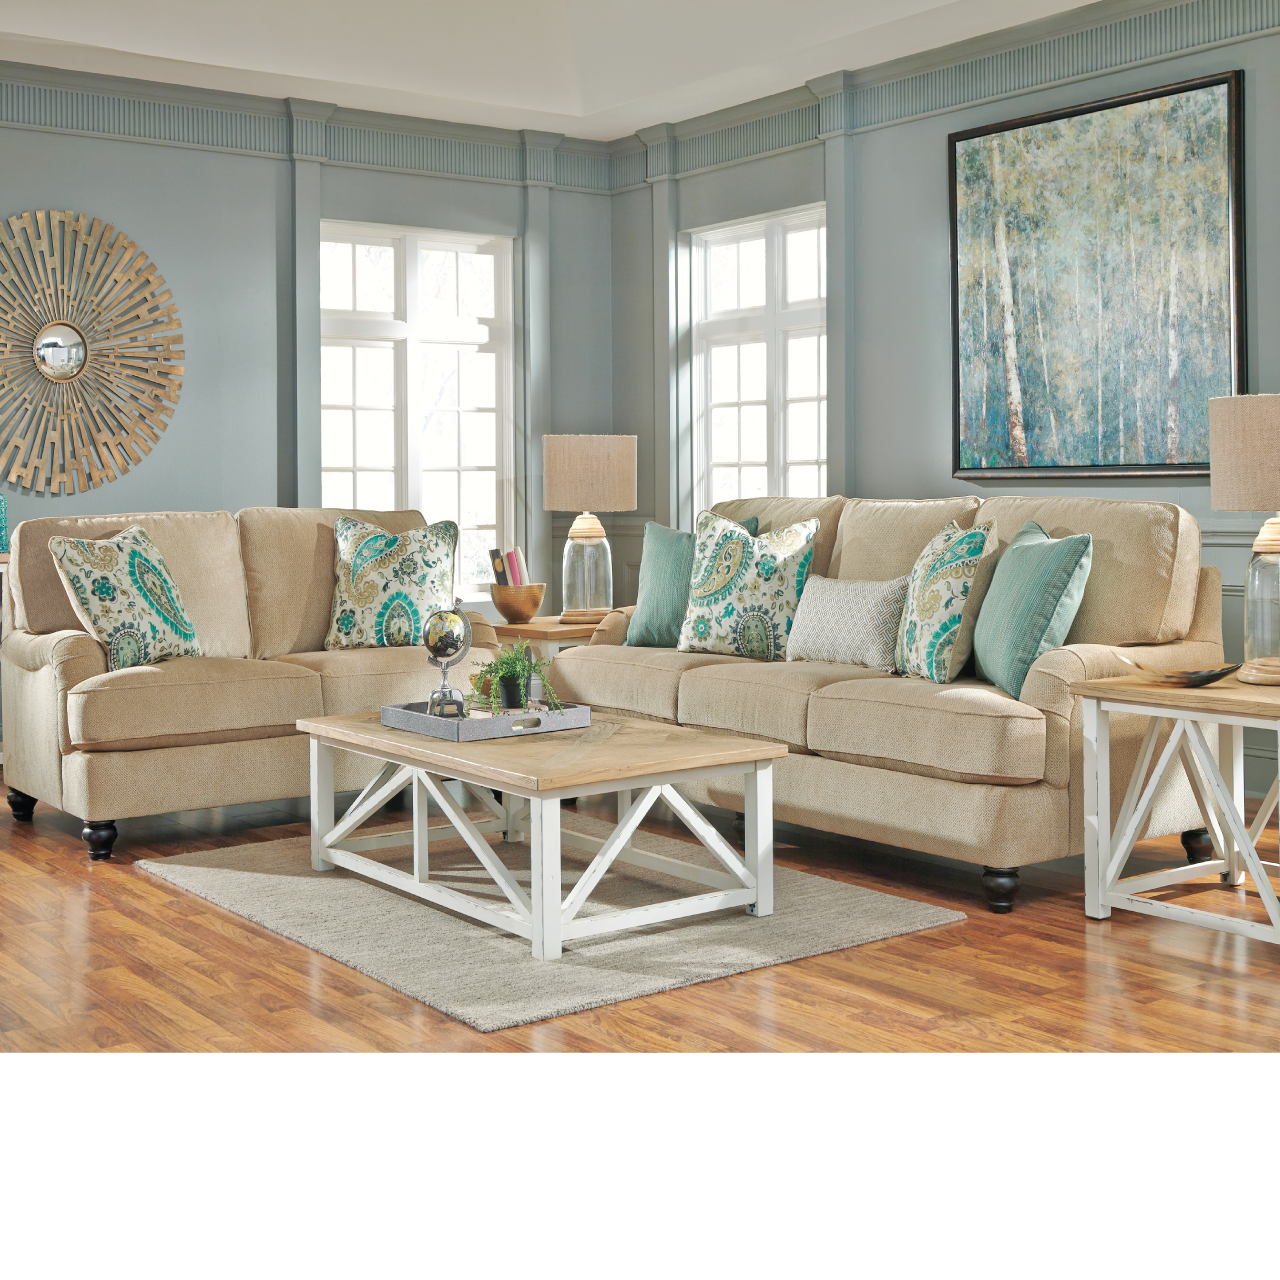 Coastal living room ideas lochian sofa by ashley for Coastal living rooms ideas